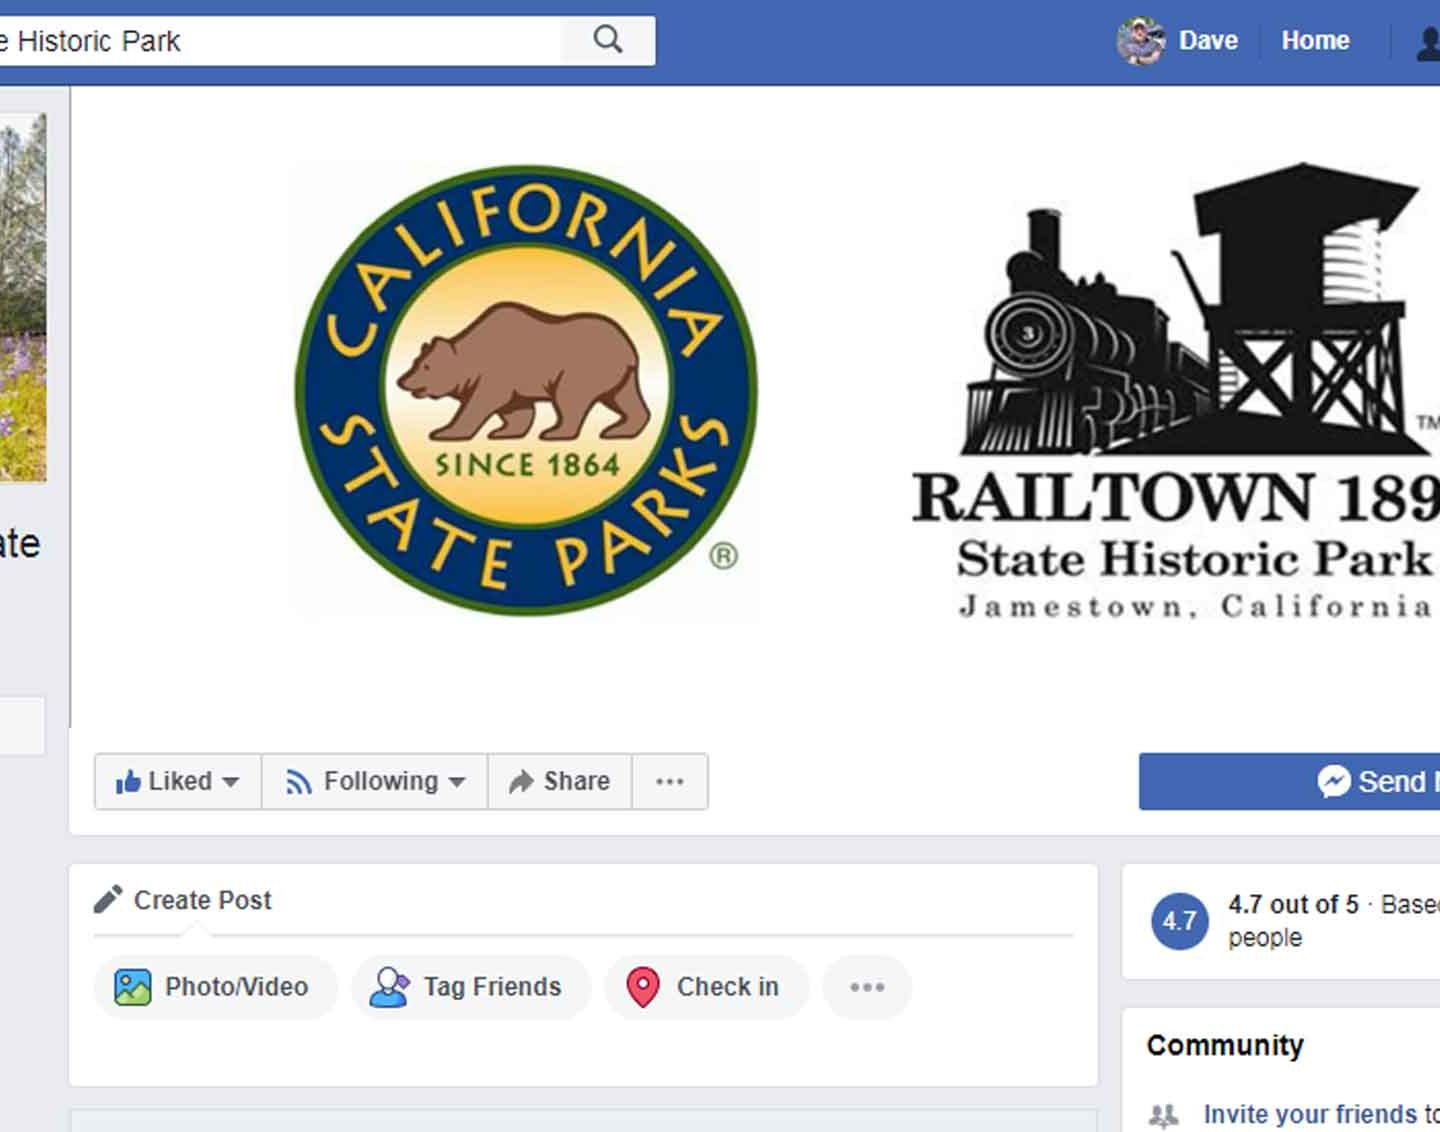 Help fix the Facebook page for Railtown 1897 State Historic Park!